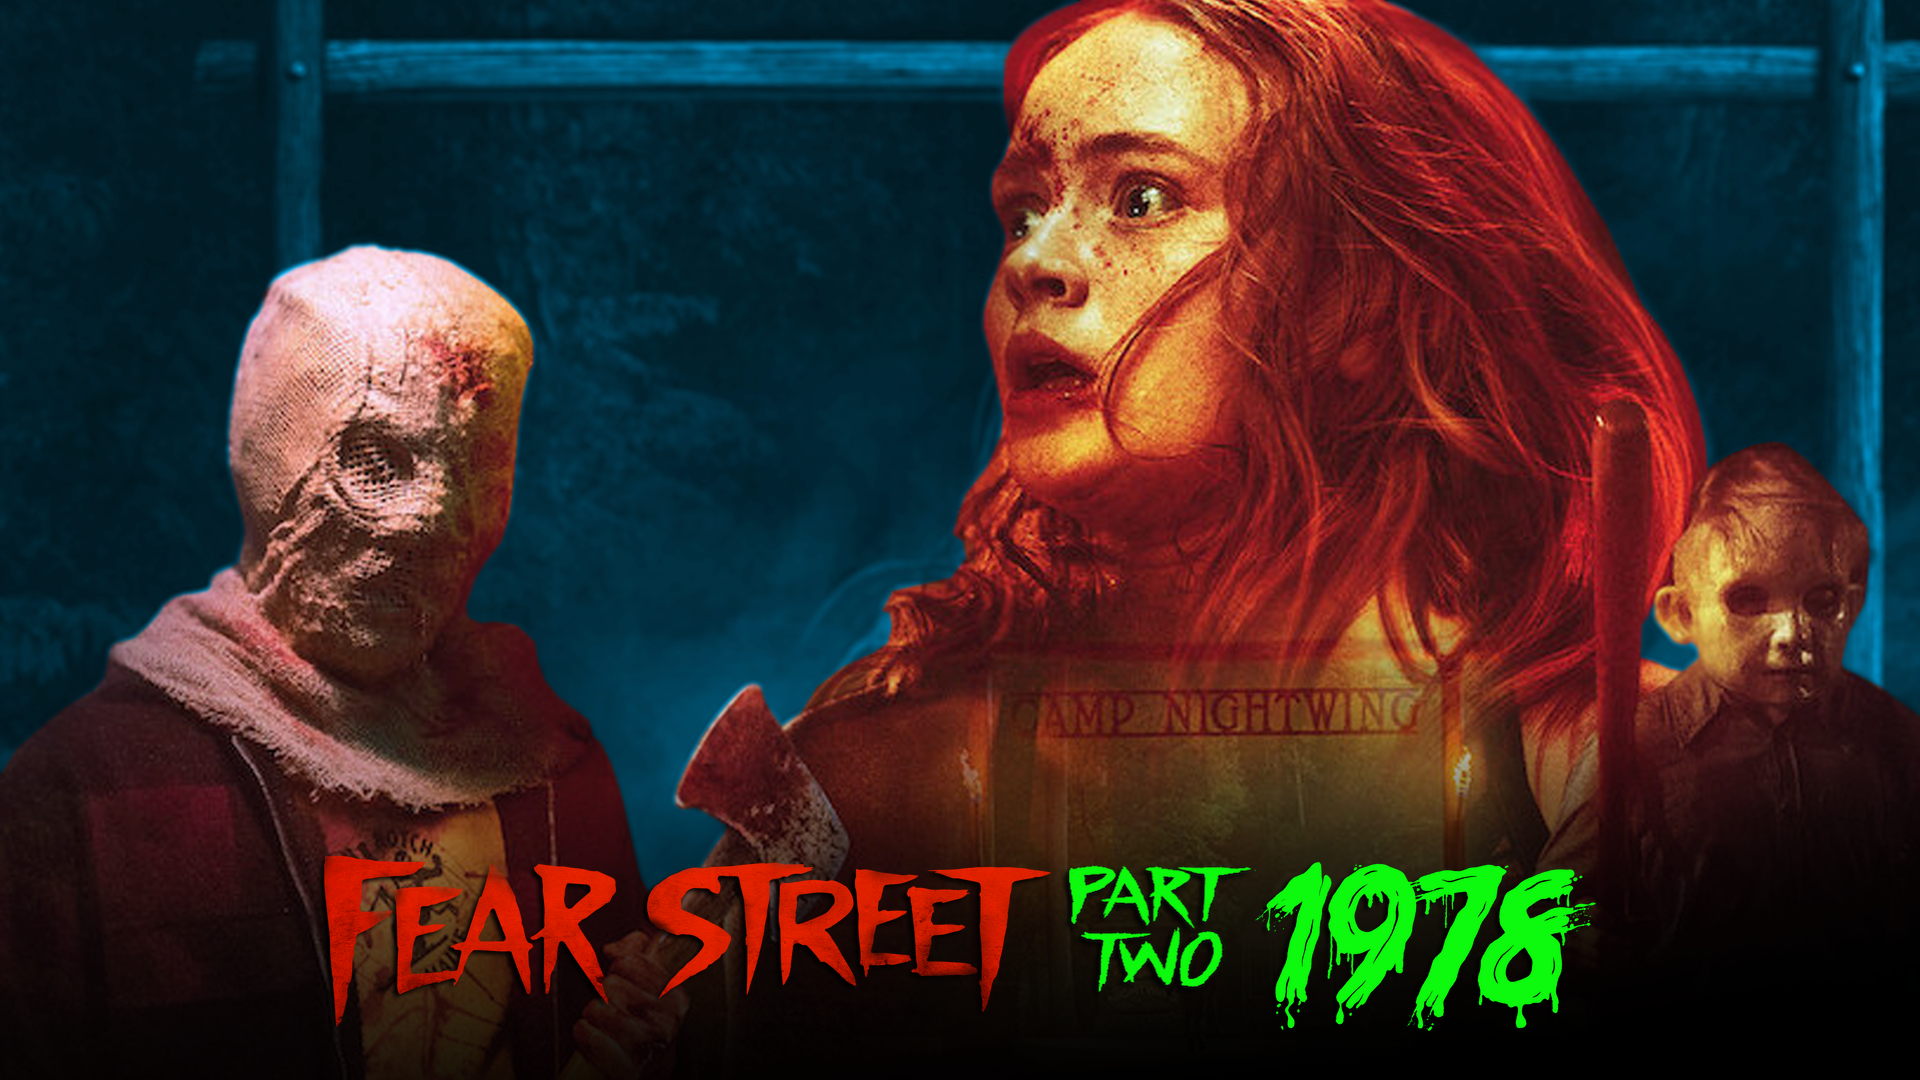 Fear Street travels to 1978 and delivers another fun horror homage